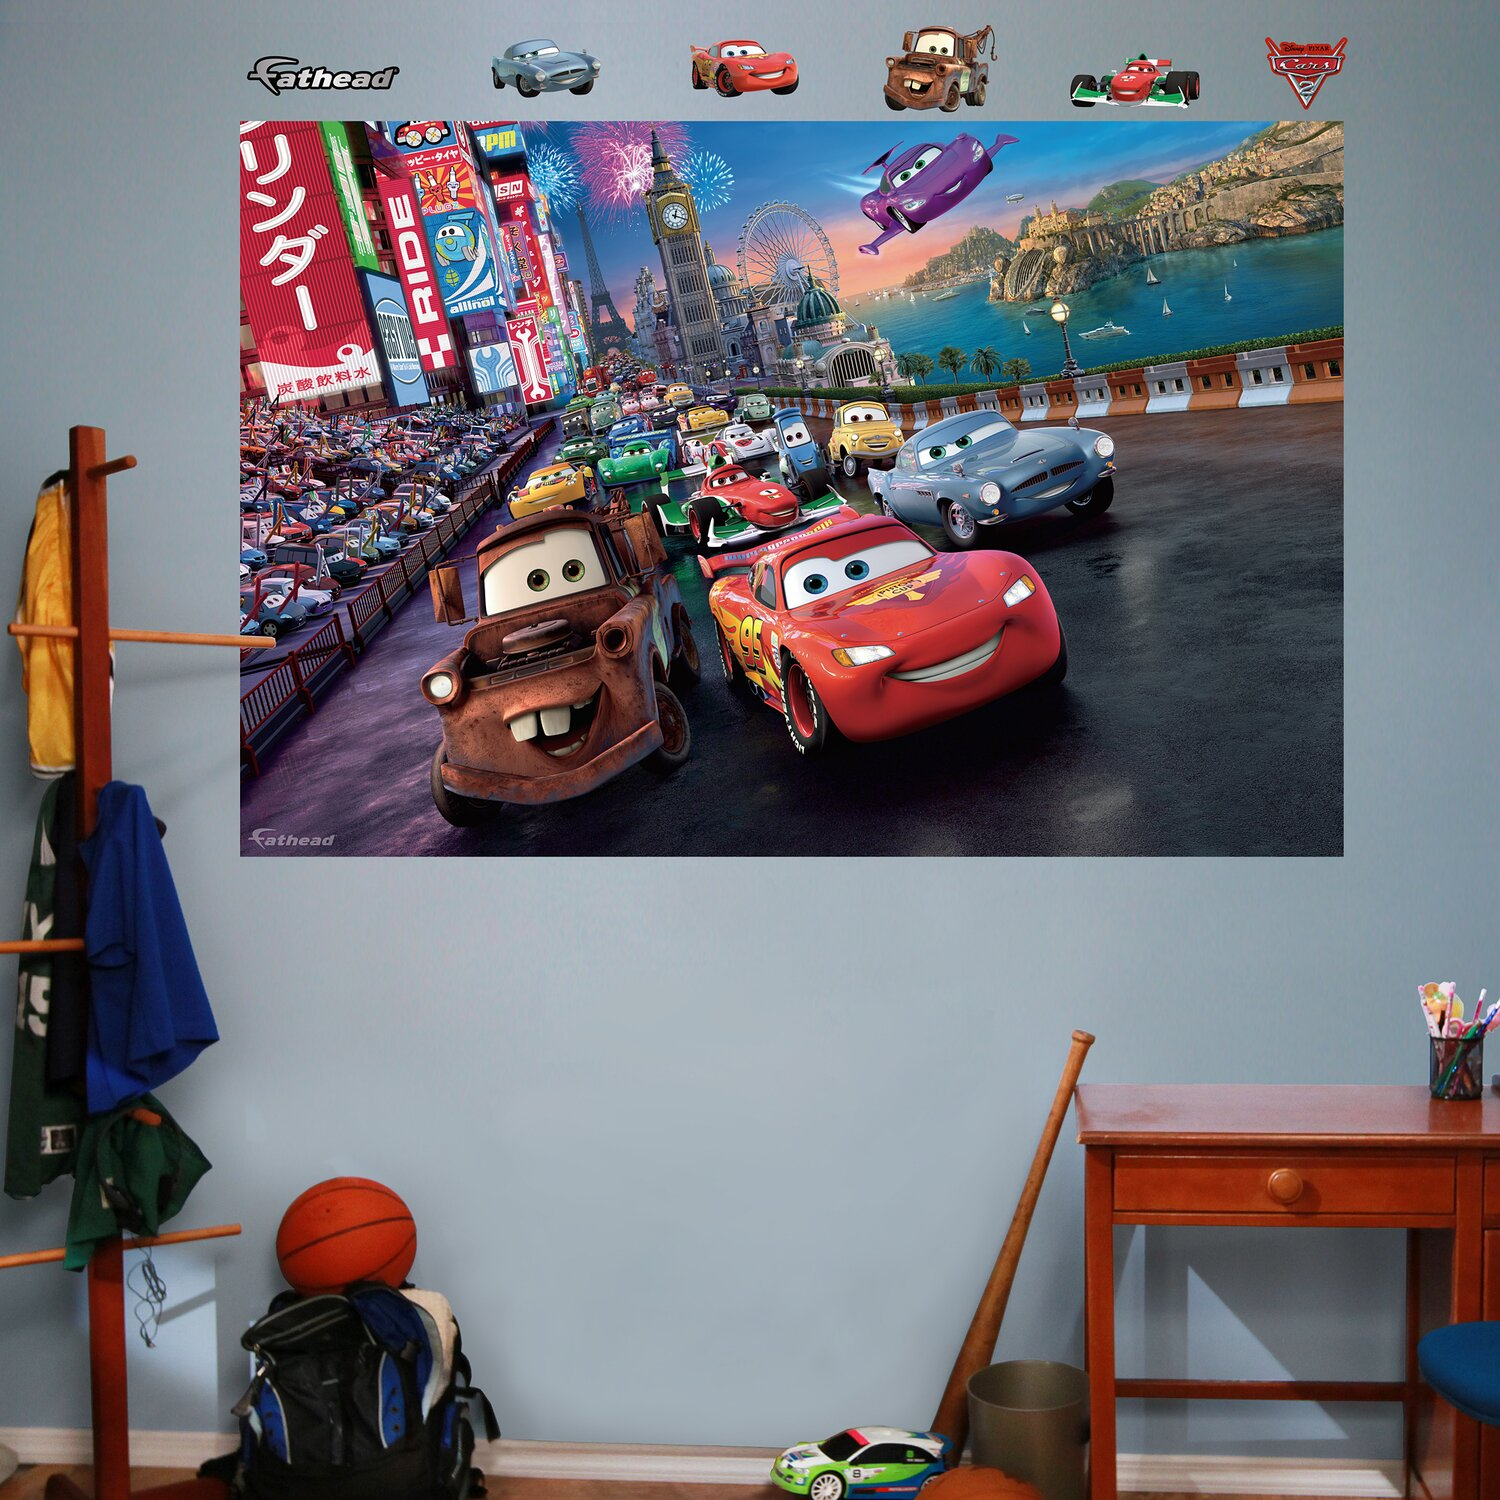 Disney cars wall mural full wall huge wall mural disney for Disney cars wall mural full wall huge